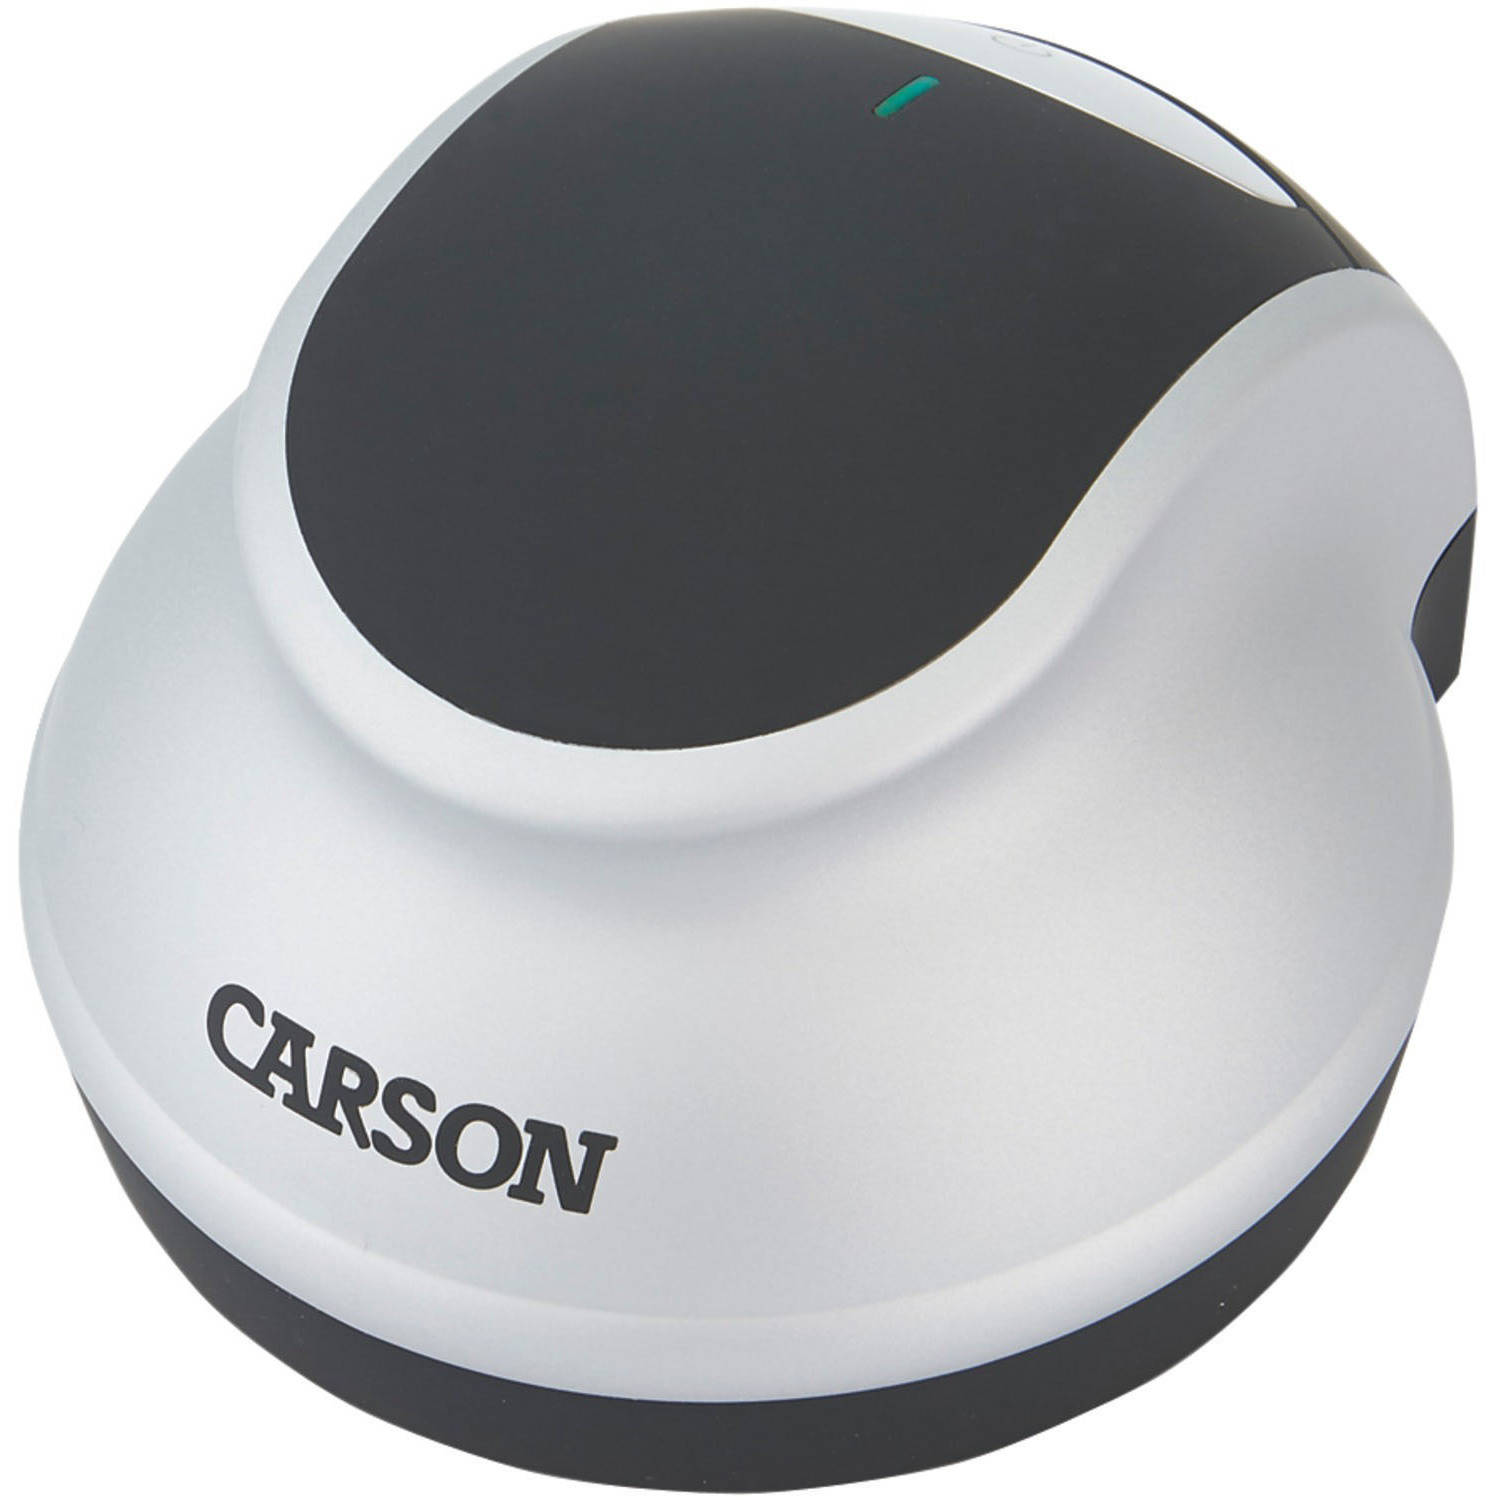 Carson DR-300 Ezread Digital TV Magnifier